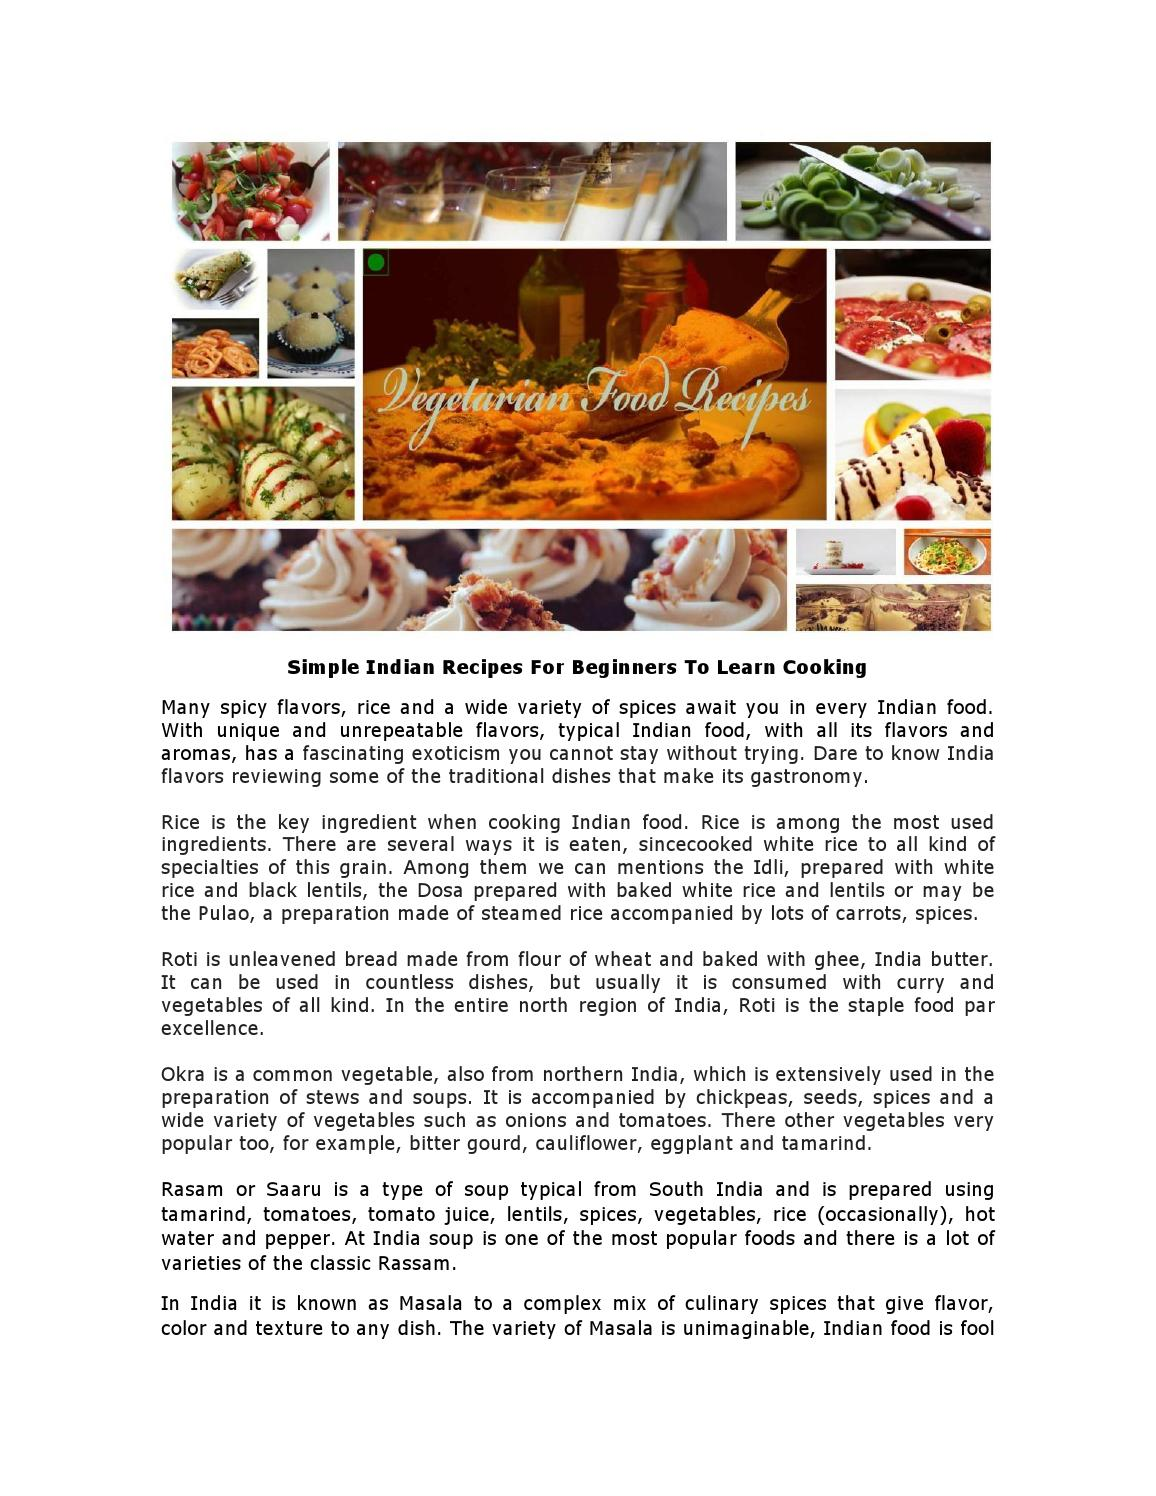 Simple indian recipes for beginners to learn cooking by a to z food simple indian recipes for beginners to learn cooking by a to z food recipes issuu forumfinder Image collections